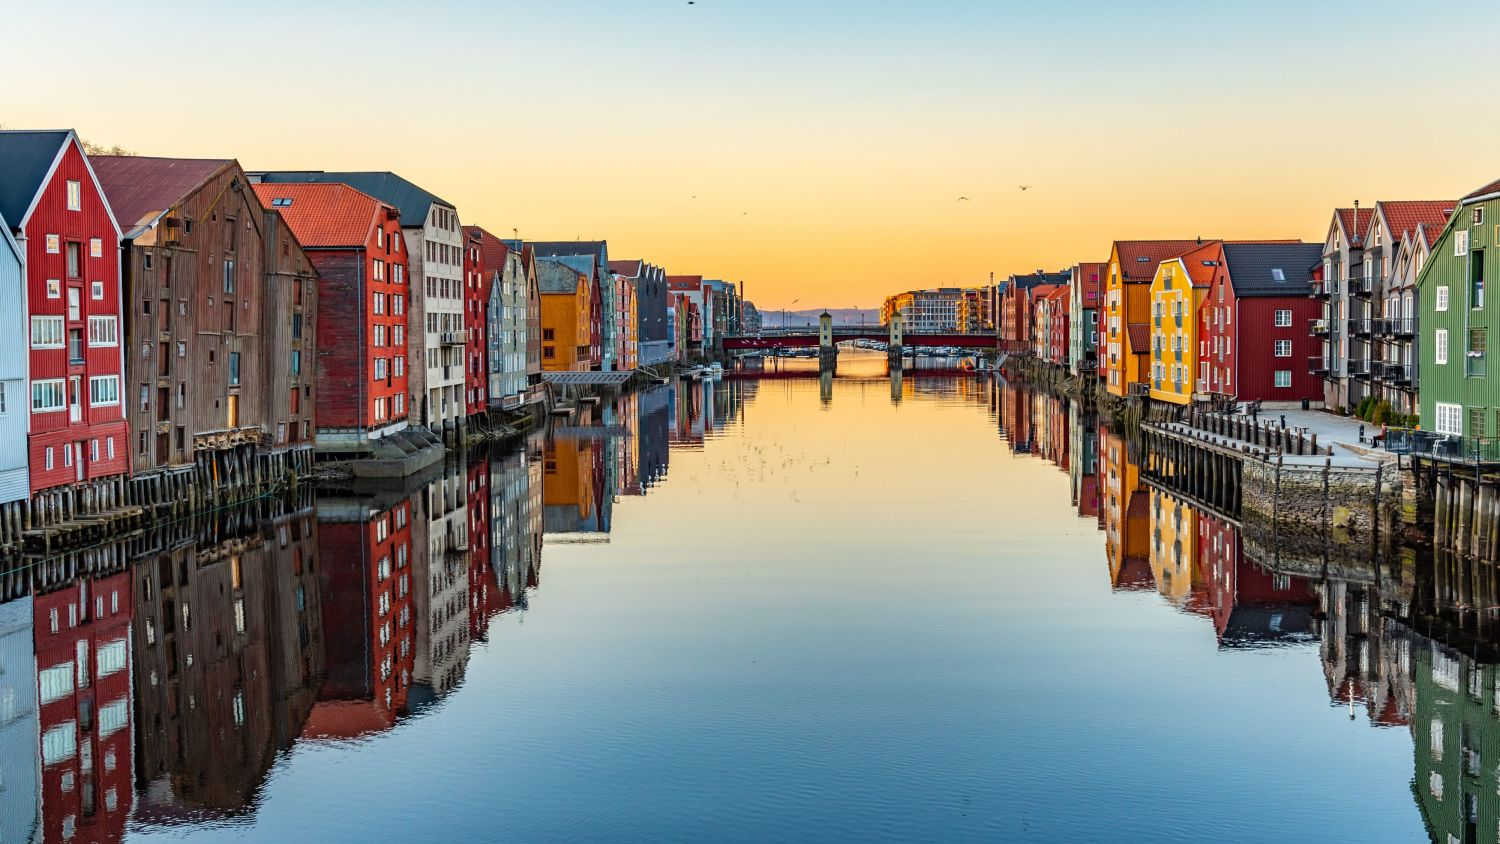 River in Trondheim with colorful houses